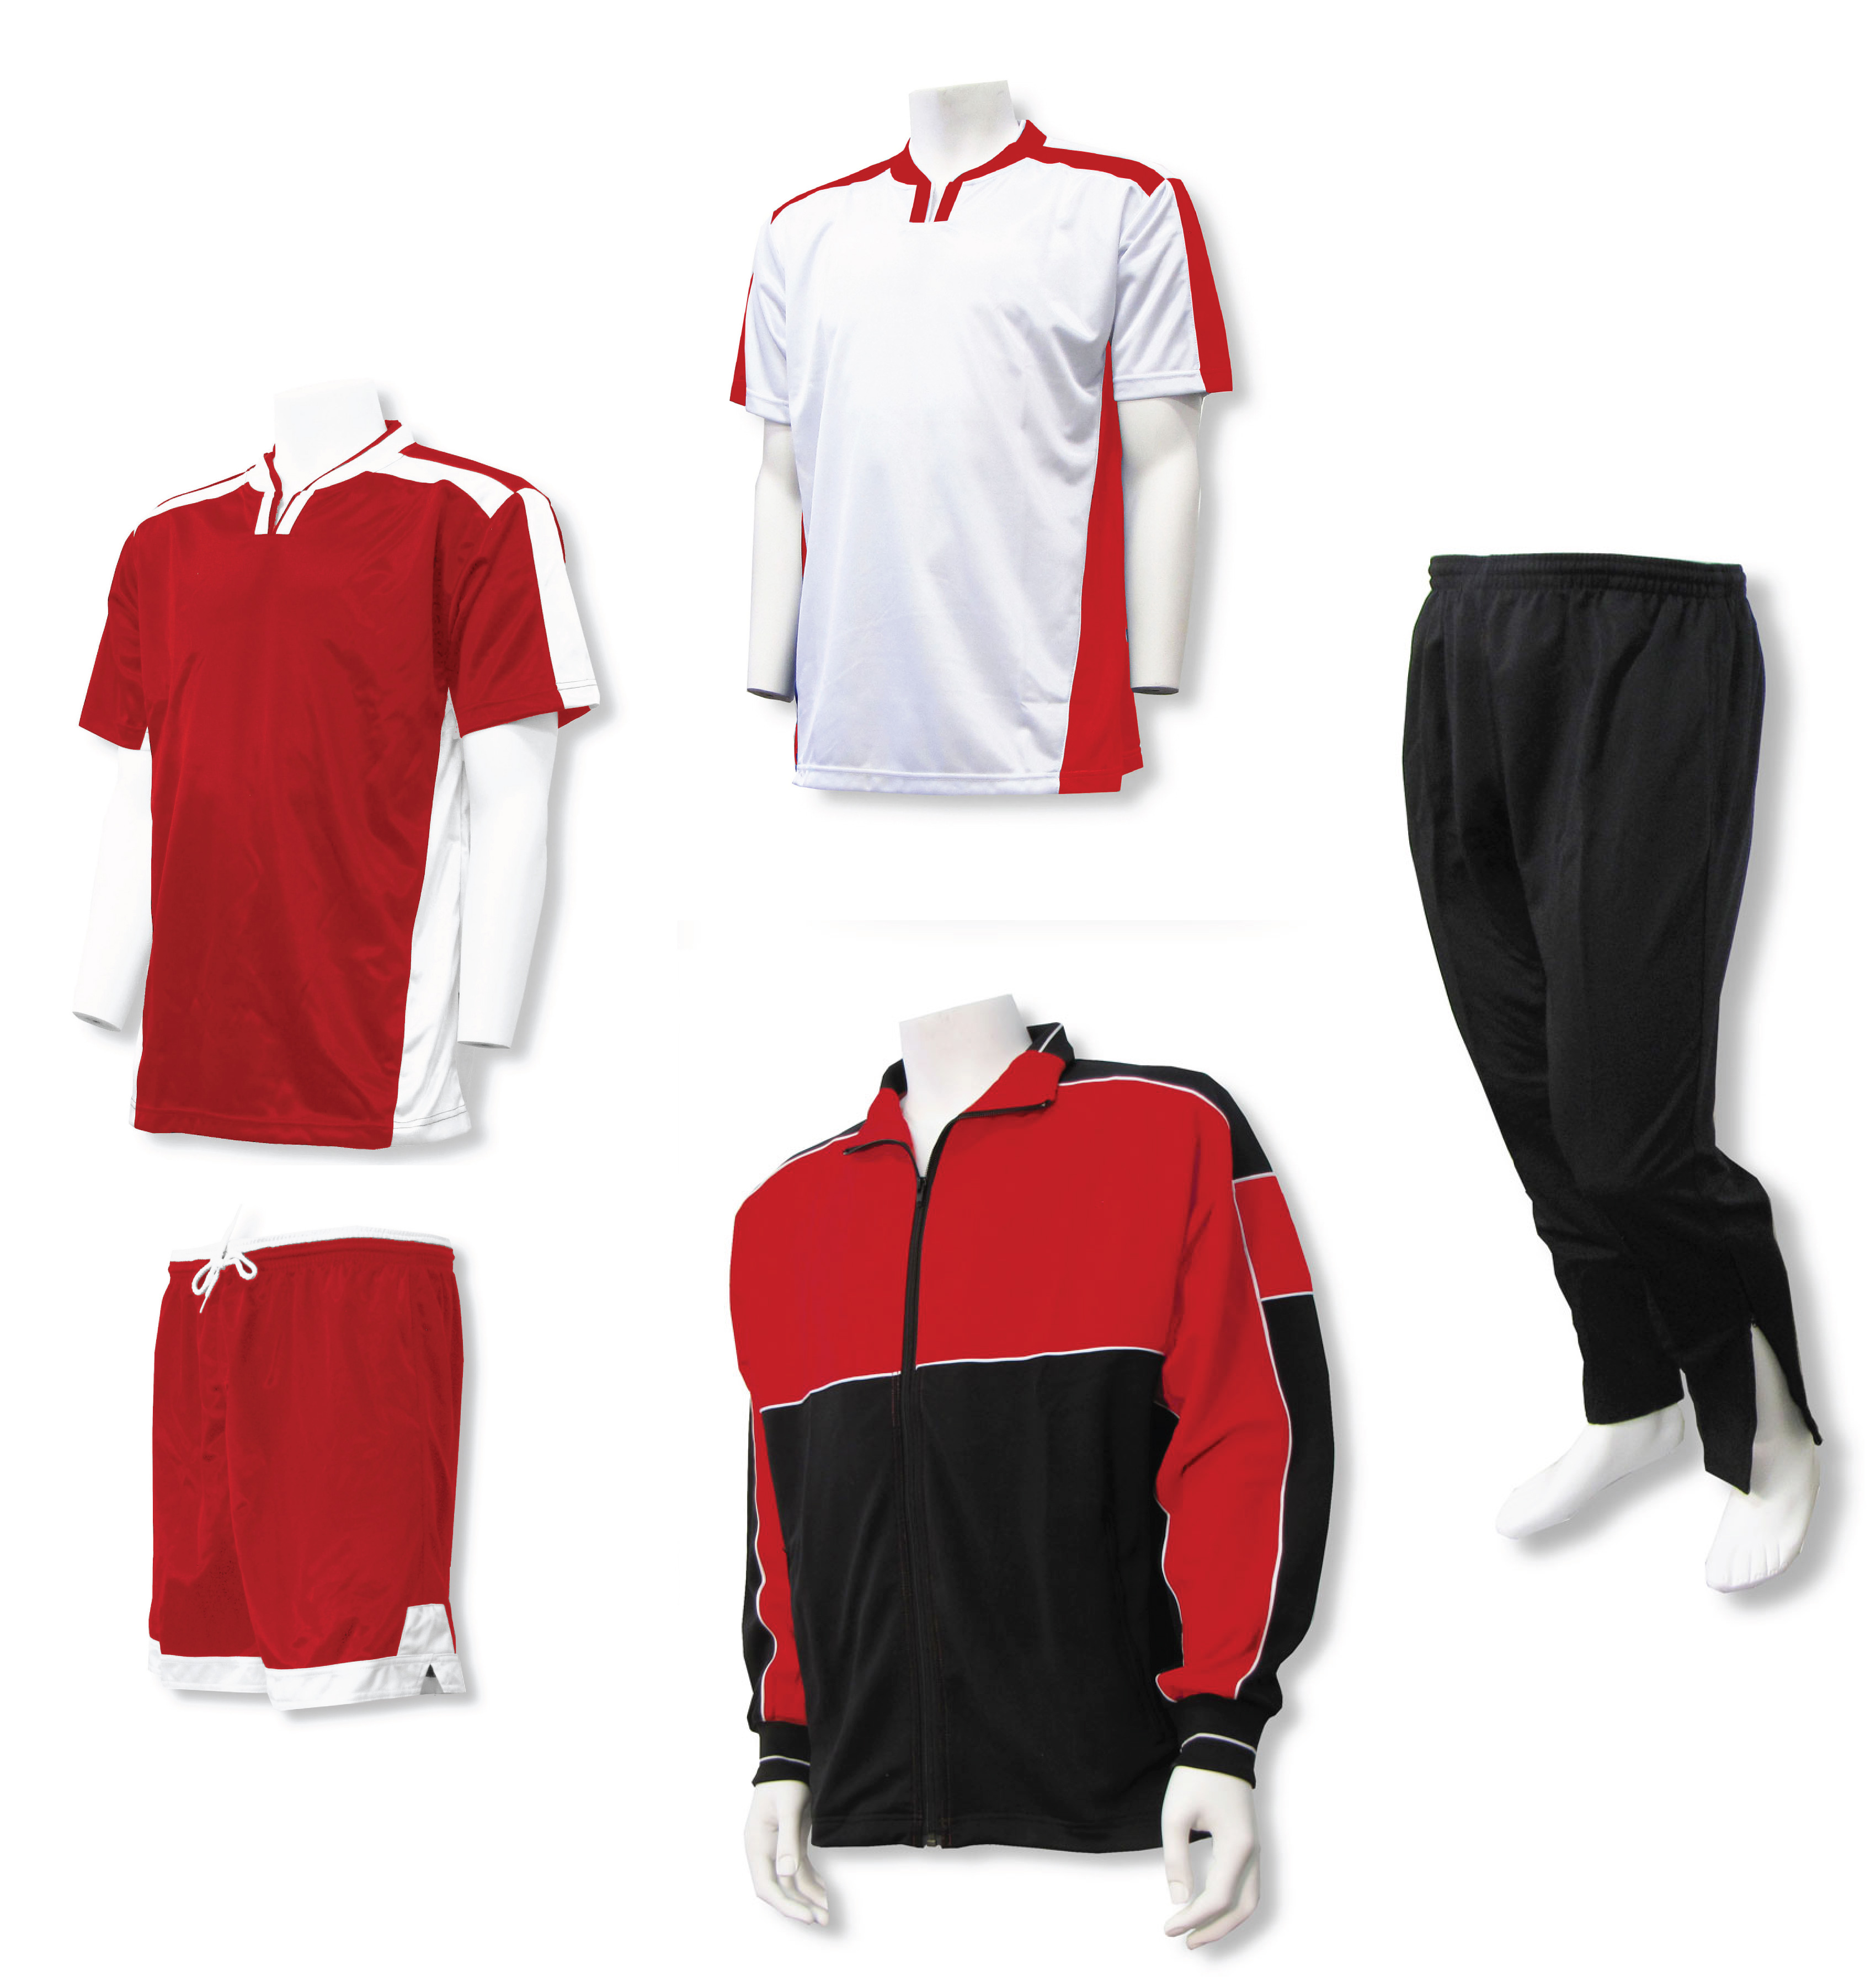 Winchester soccer team package with soccer uniform and warm-ups in red/white by Code Four Athletics